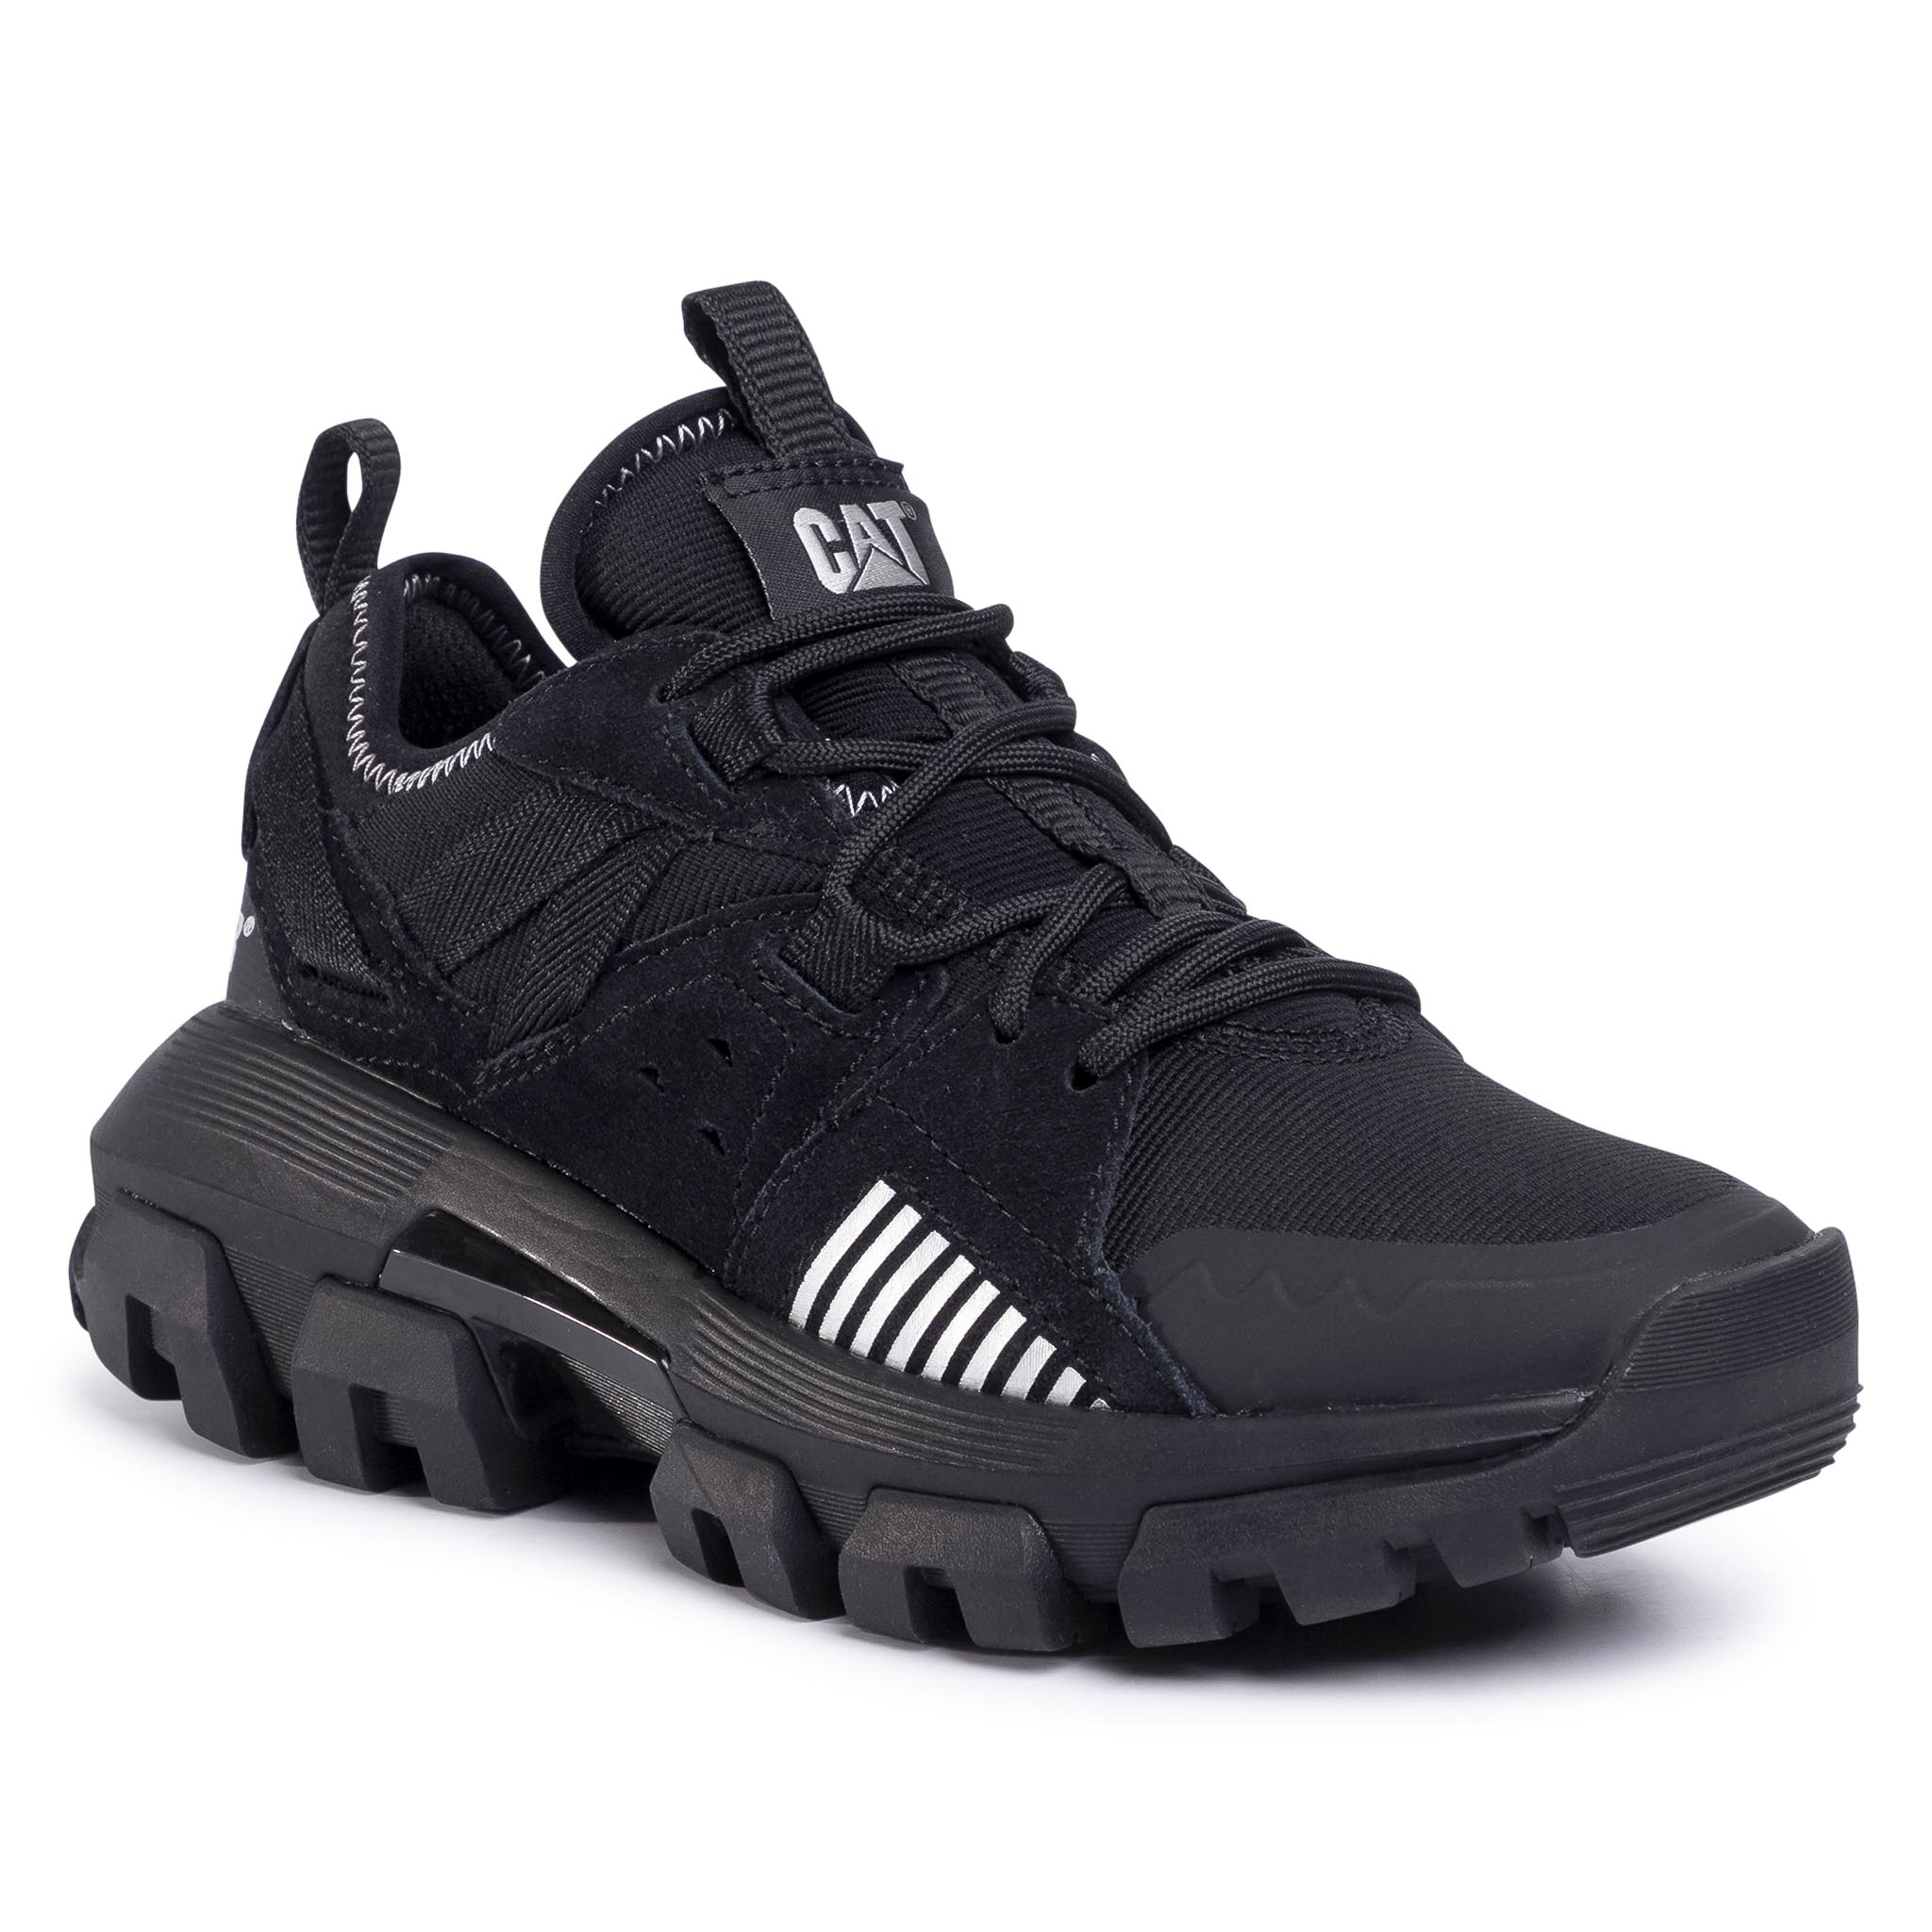 Sneakers CATERPILLAR - Raider Sport P724506 Black